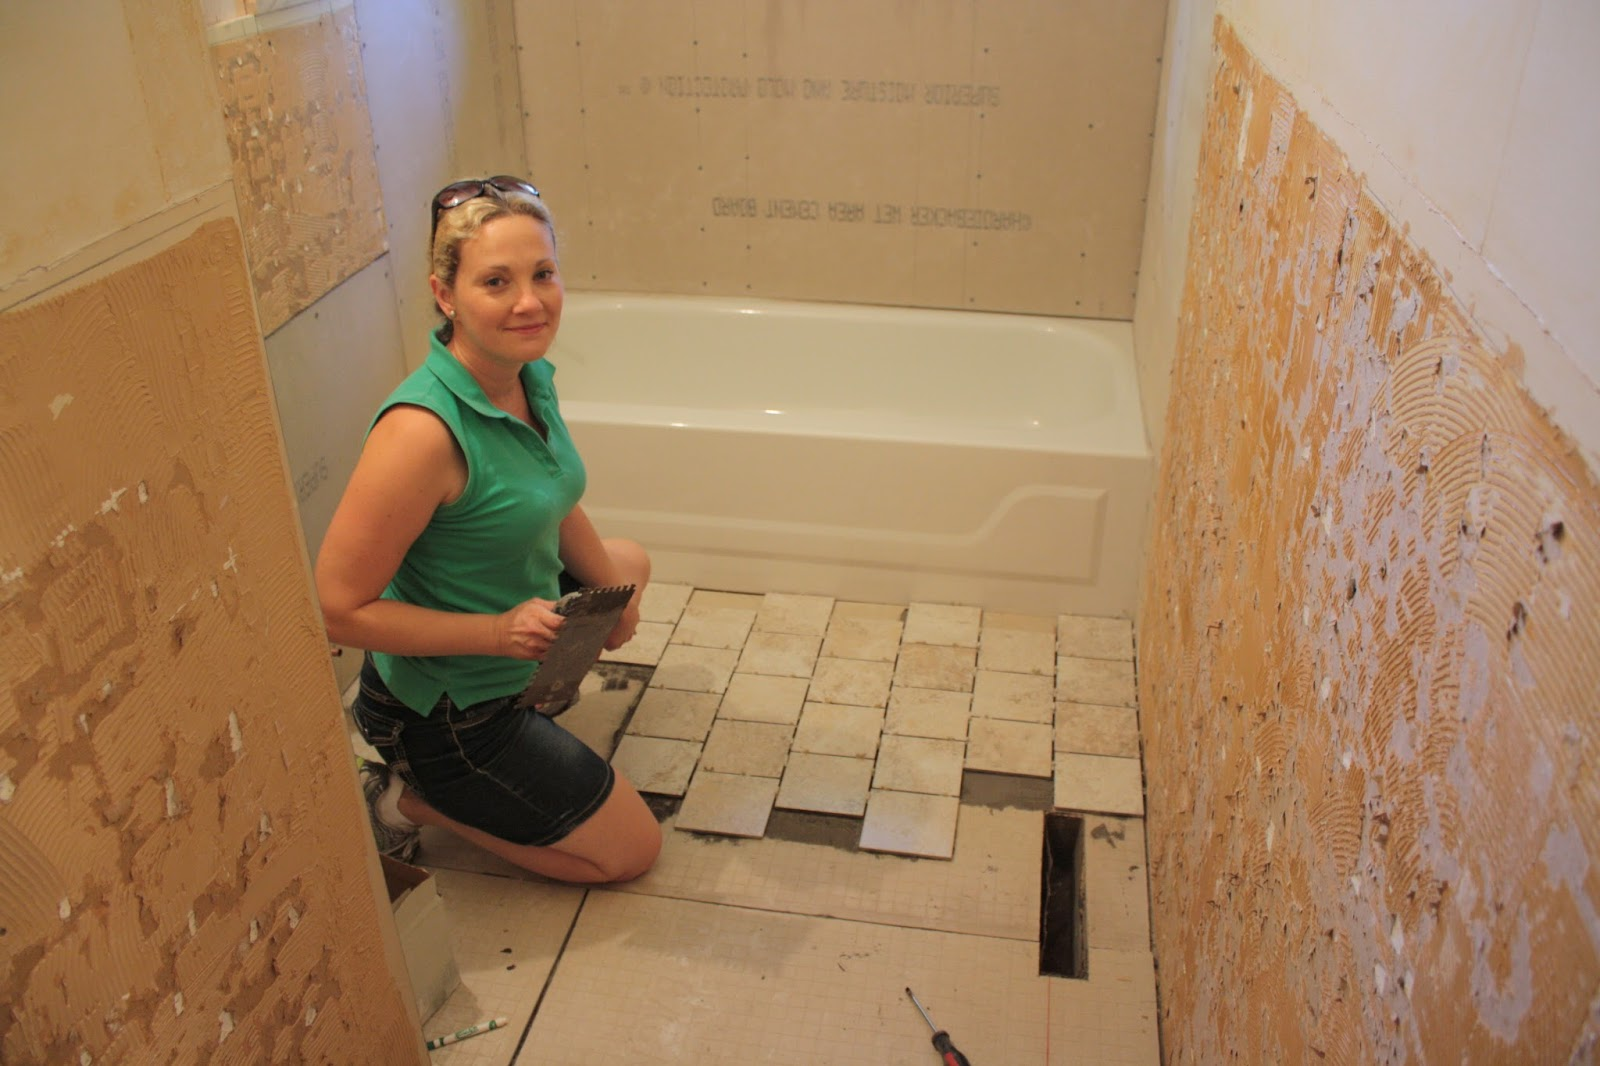 Staggered tile cheap vapor glass subway tile kitchen backsplash affordable this is the tile from home depot we needed square feet it took several hours to lay it all down we laid them in a staggered pattern with dailygadgetfo Choice Image